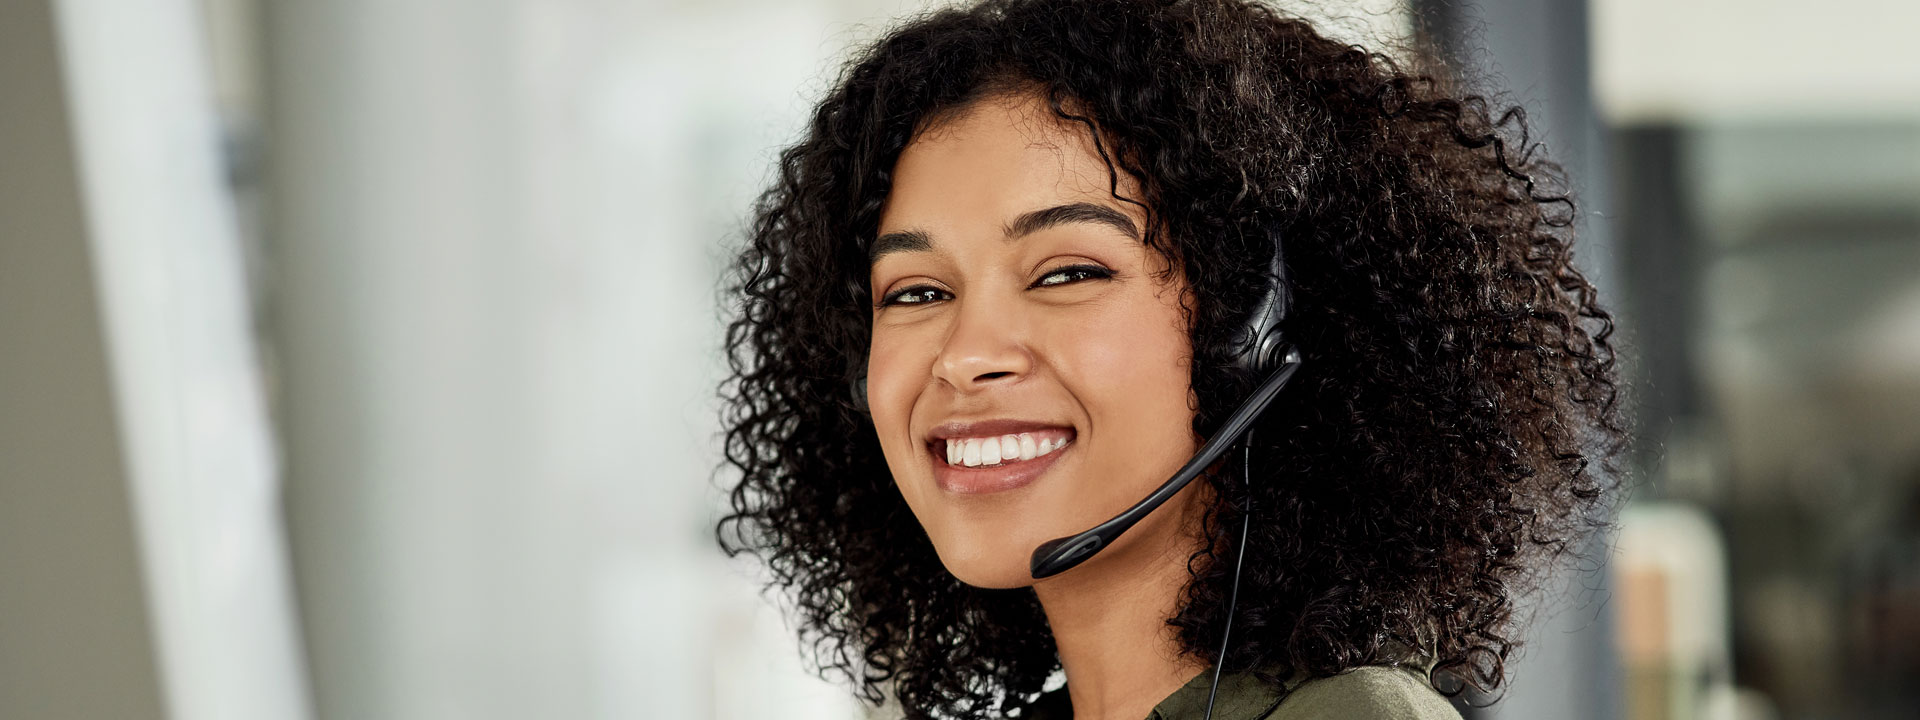 Women using telephone headset looking at camera